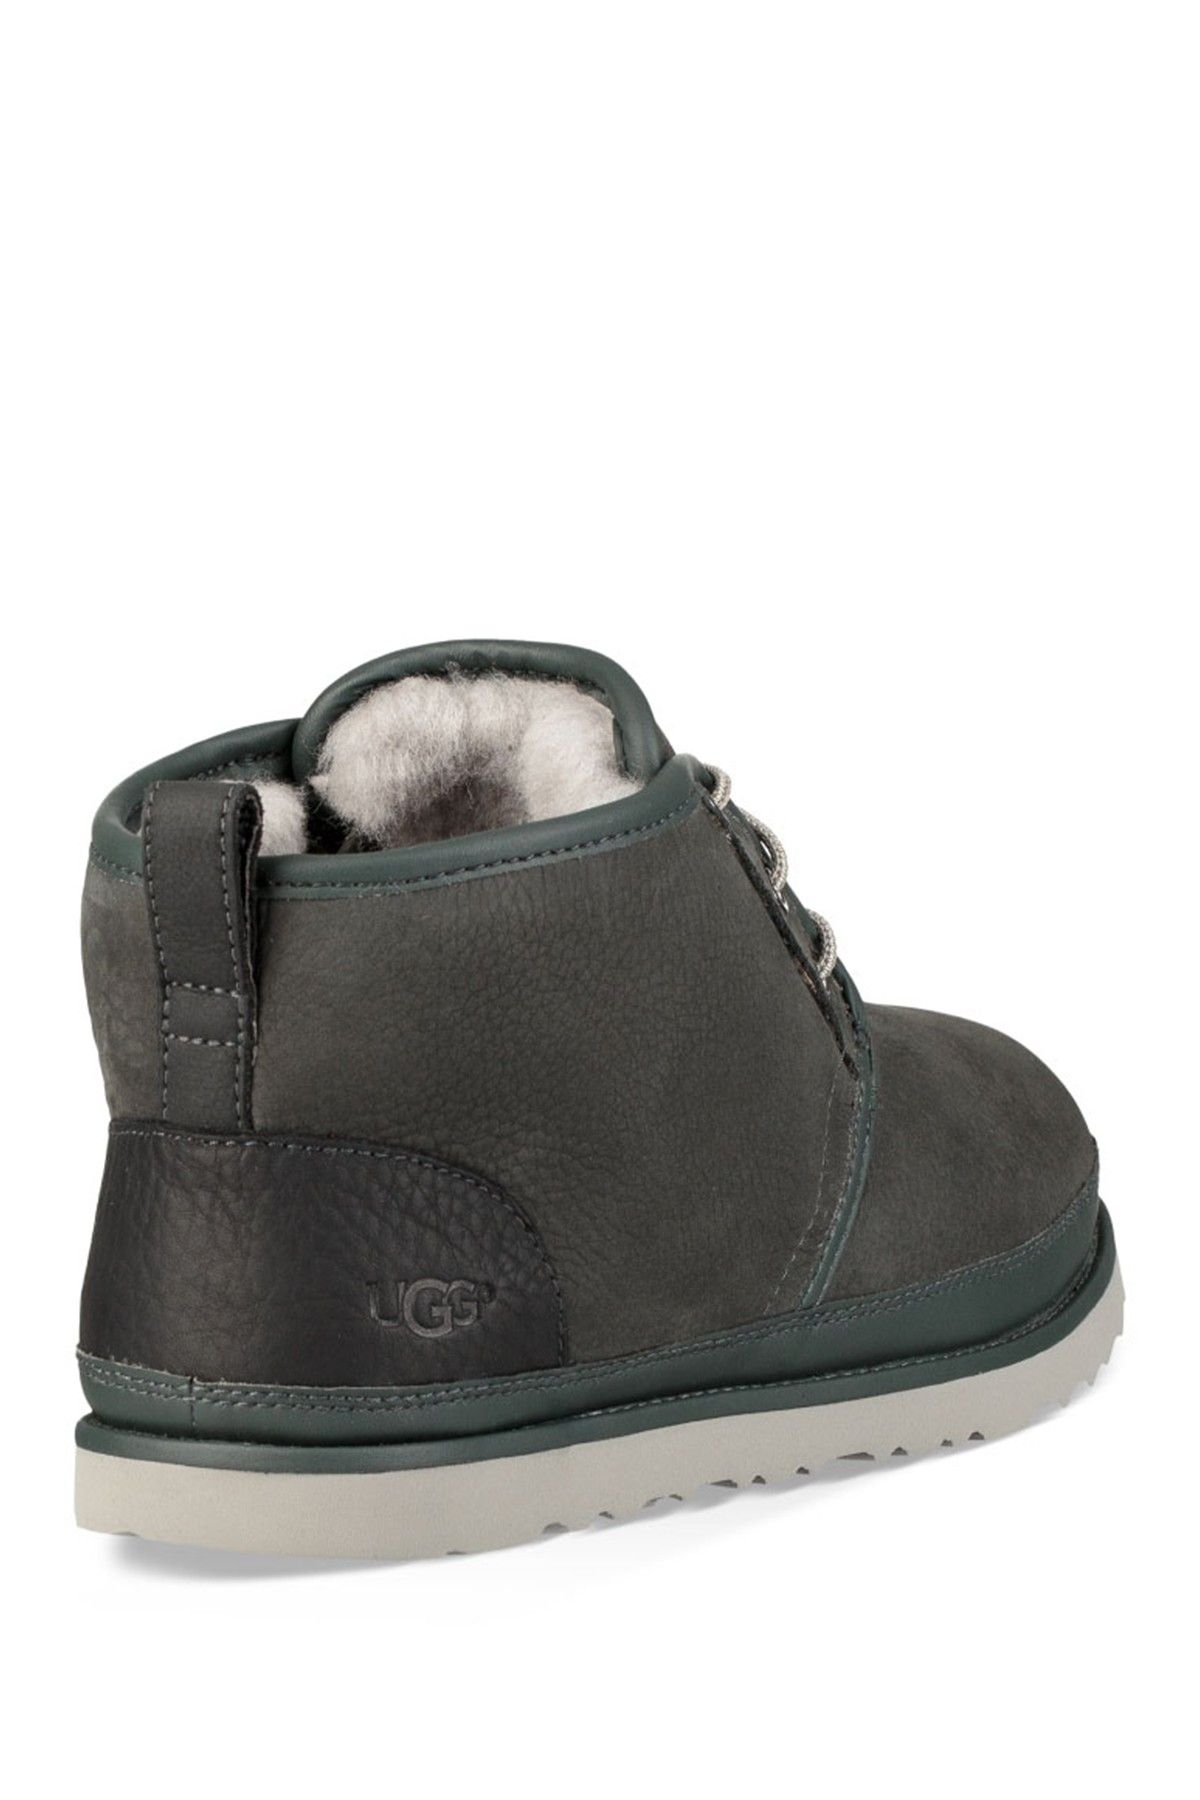 9afc64f9f63 Neumel Waterproof Chukka Boot | Shoes and Boots | Shoes, Brogan ...